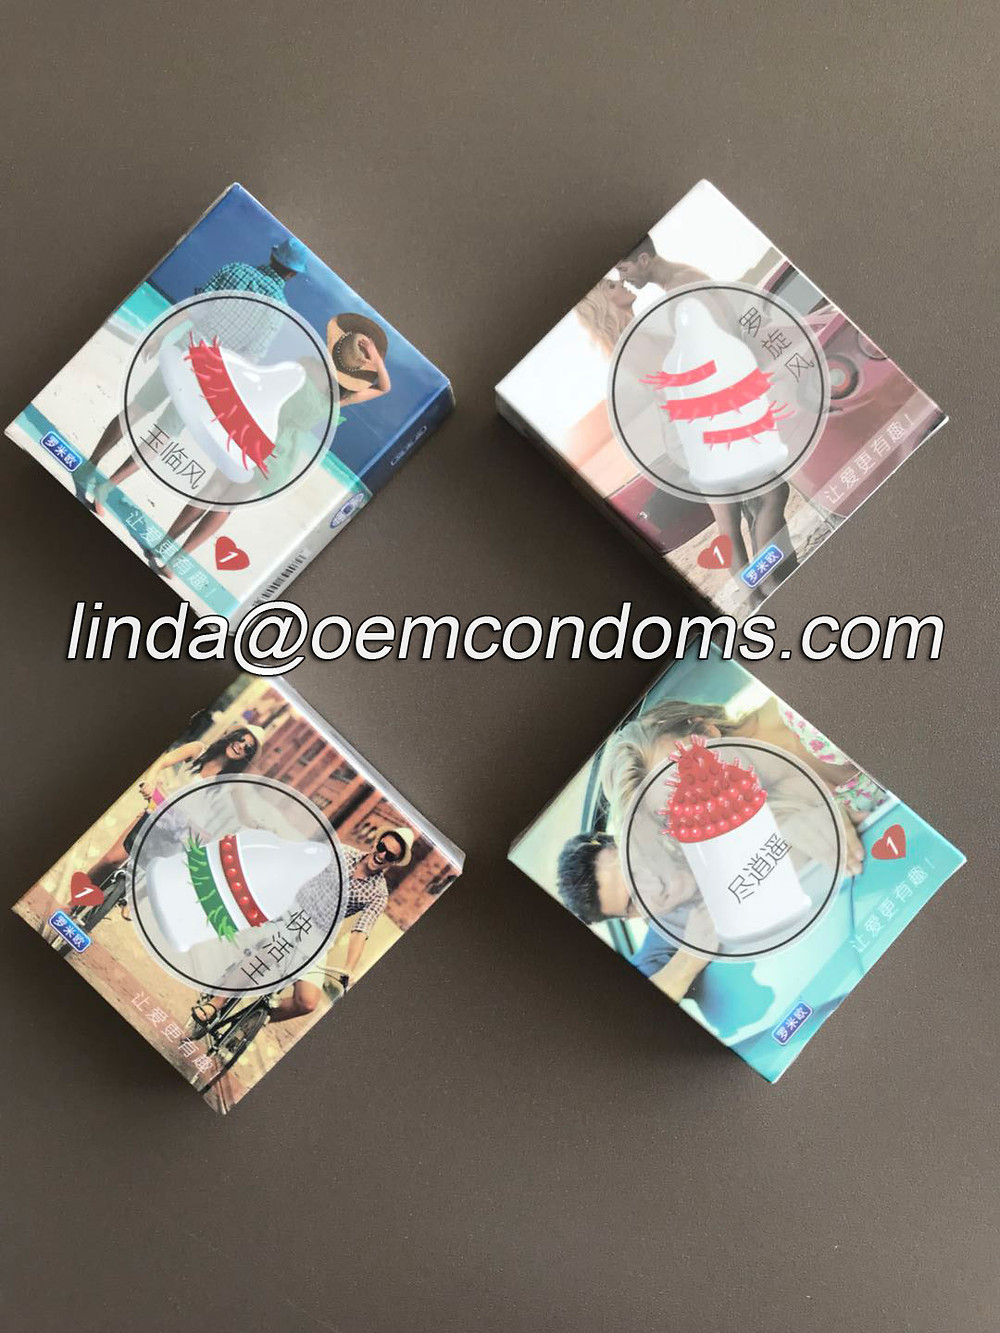 special condom, rubber thorn spike condom, romeo spike condom manufacurer